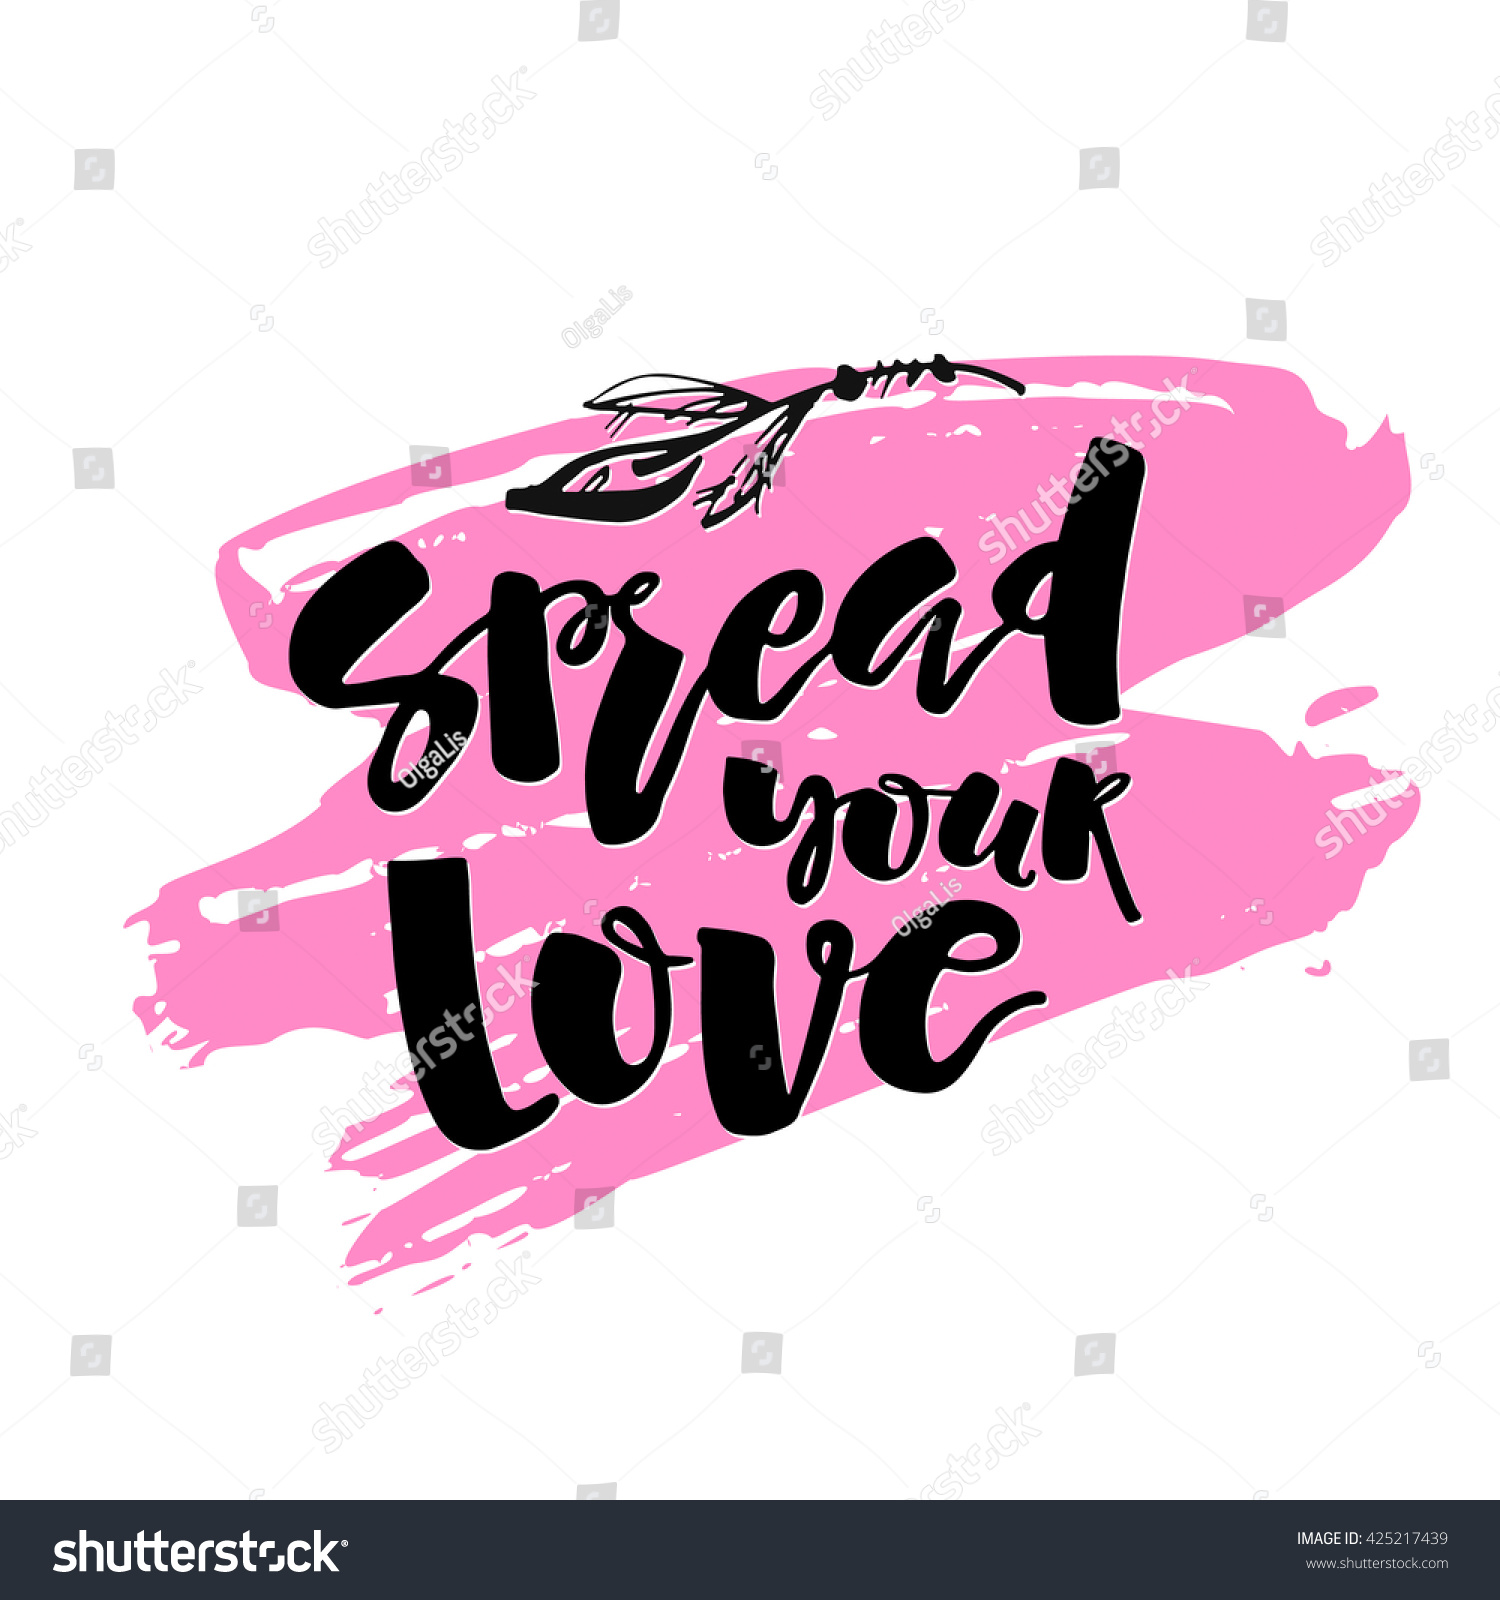 Love charity concept hand lettering motivation stock vector love and charity concept hand lettering motivation poster artistic design for a logo greeting kristyandbryce Choice Image